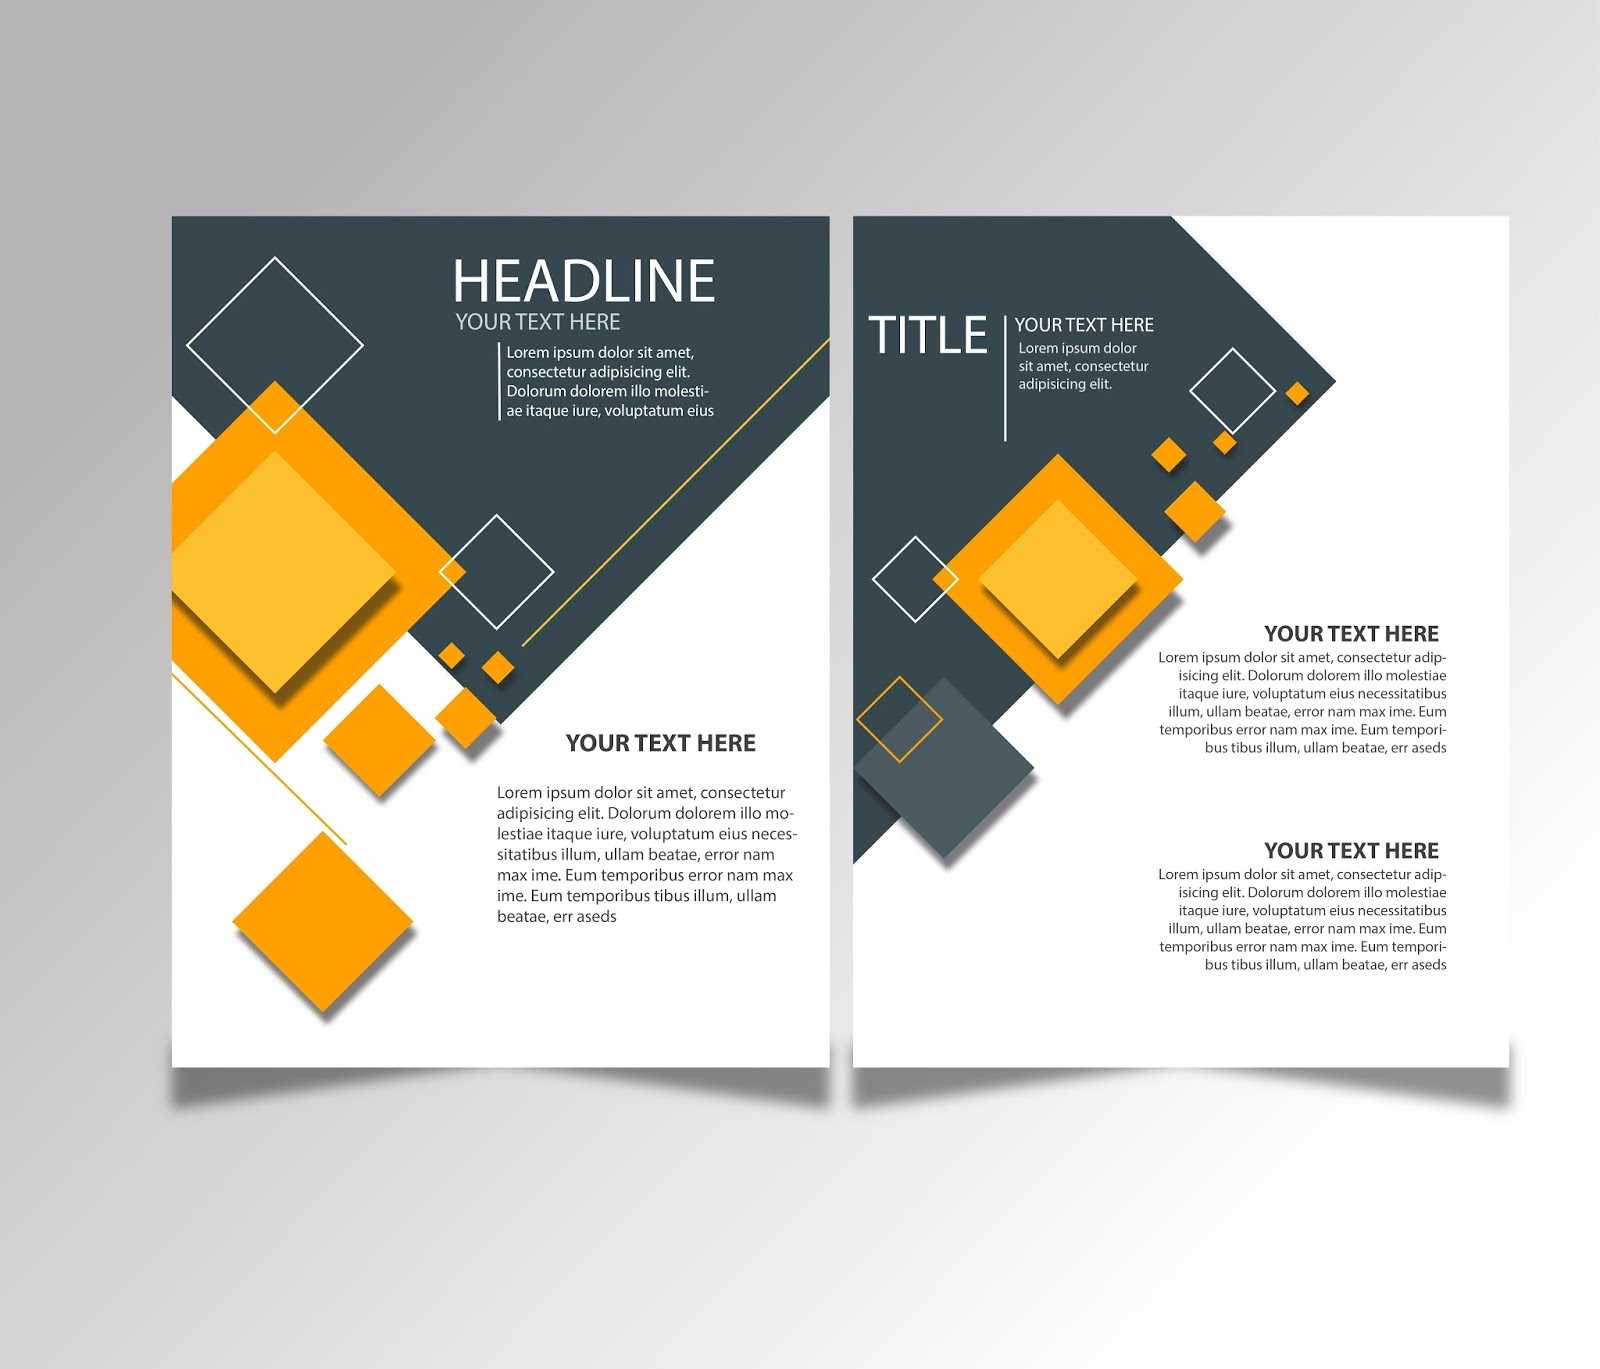 Free Download Brochure Design Templates Ai Files - Ideosprocess Inside Creative Brochure Templates Free Download